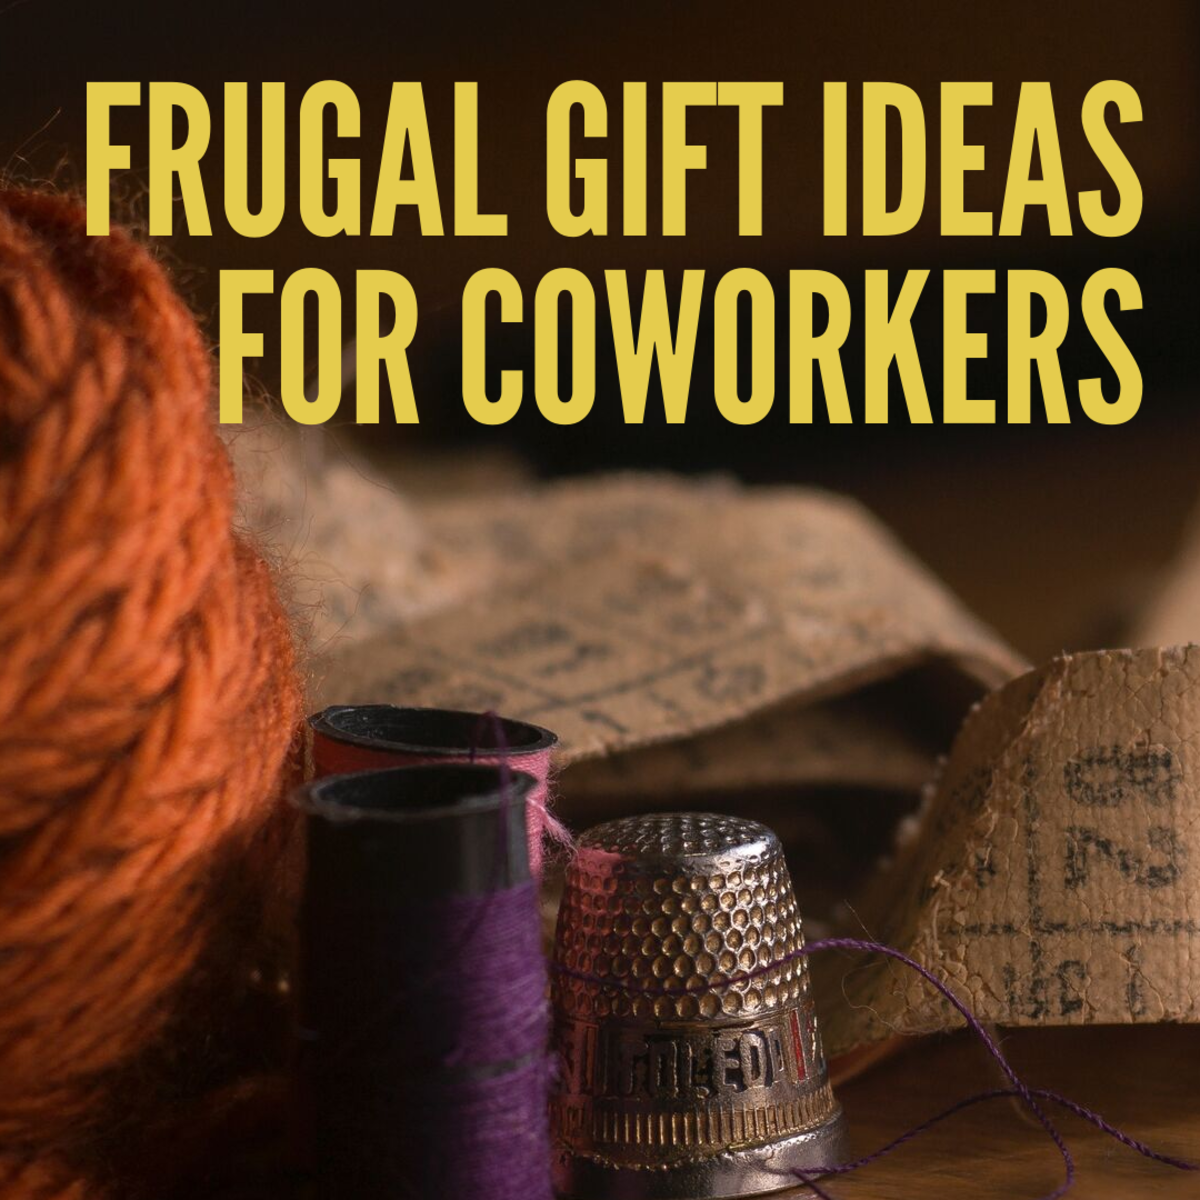 Ideas for gifts for co-workers that are thrifty and won't break the bank.